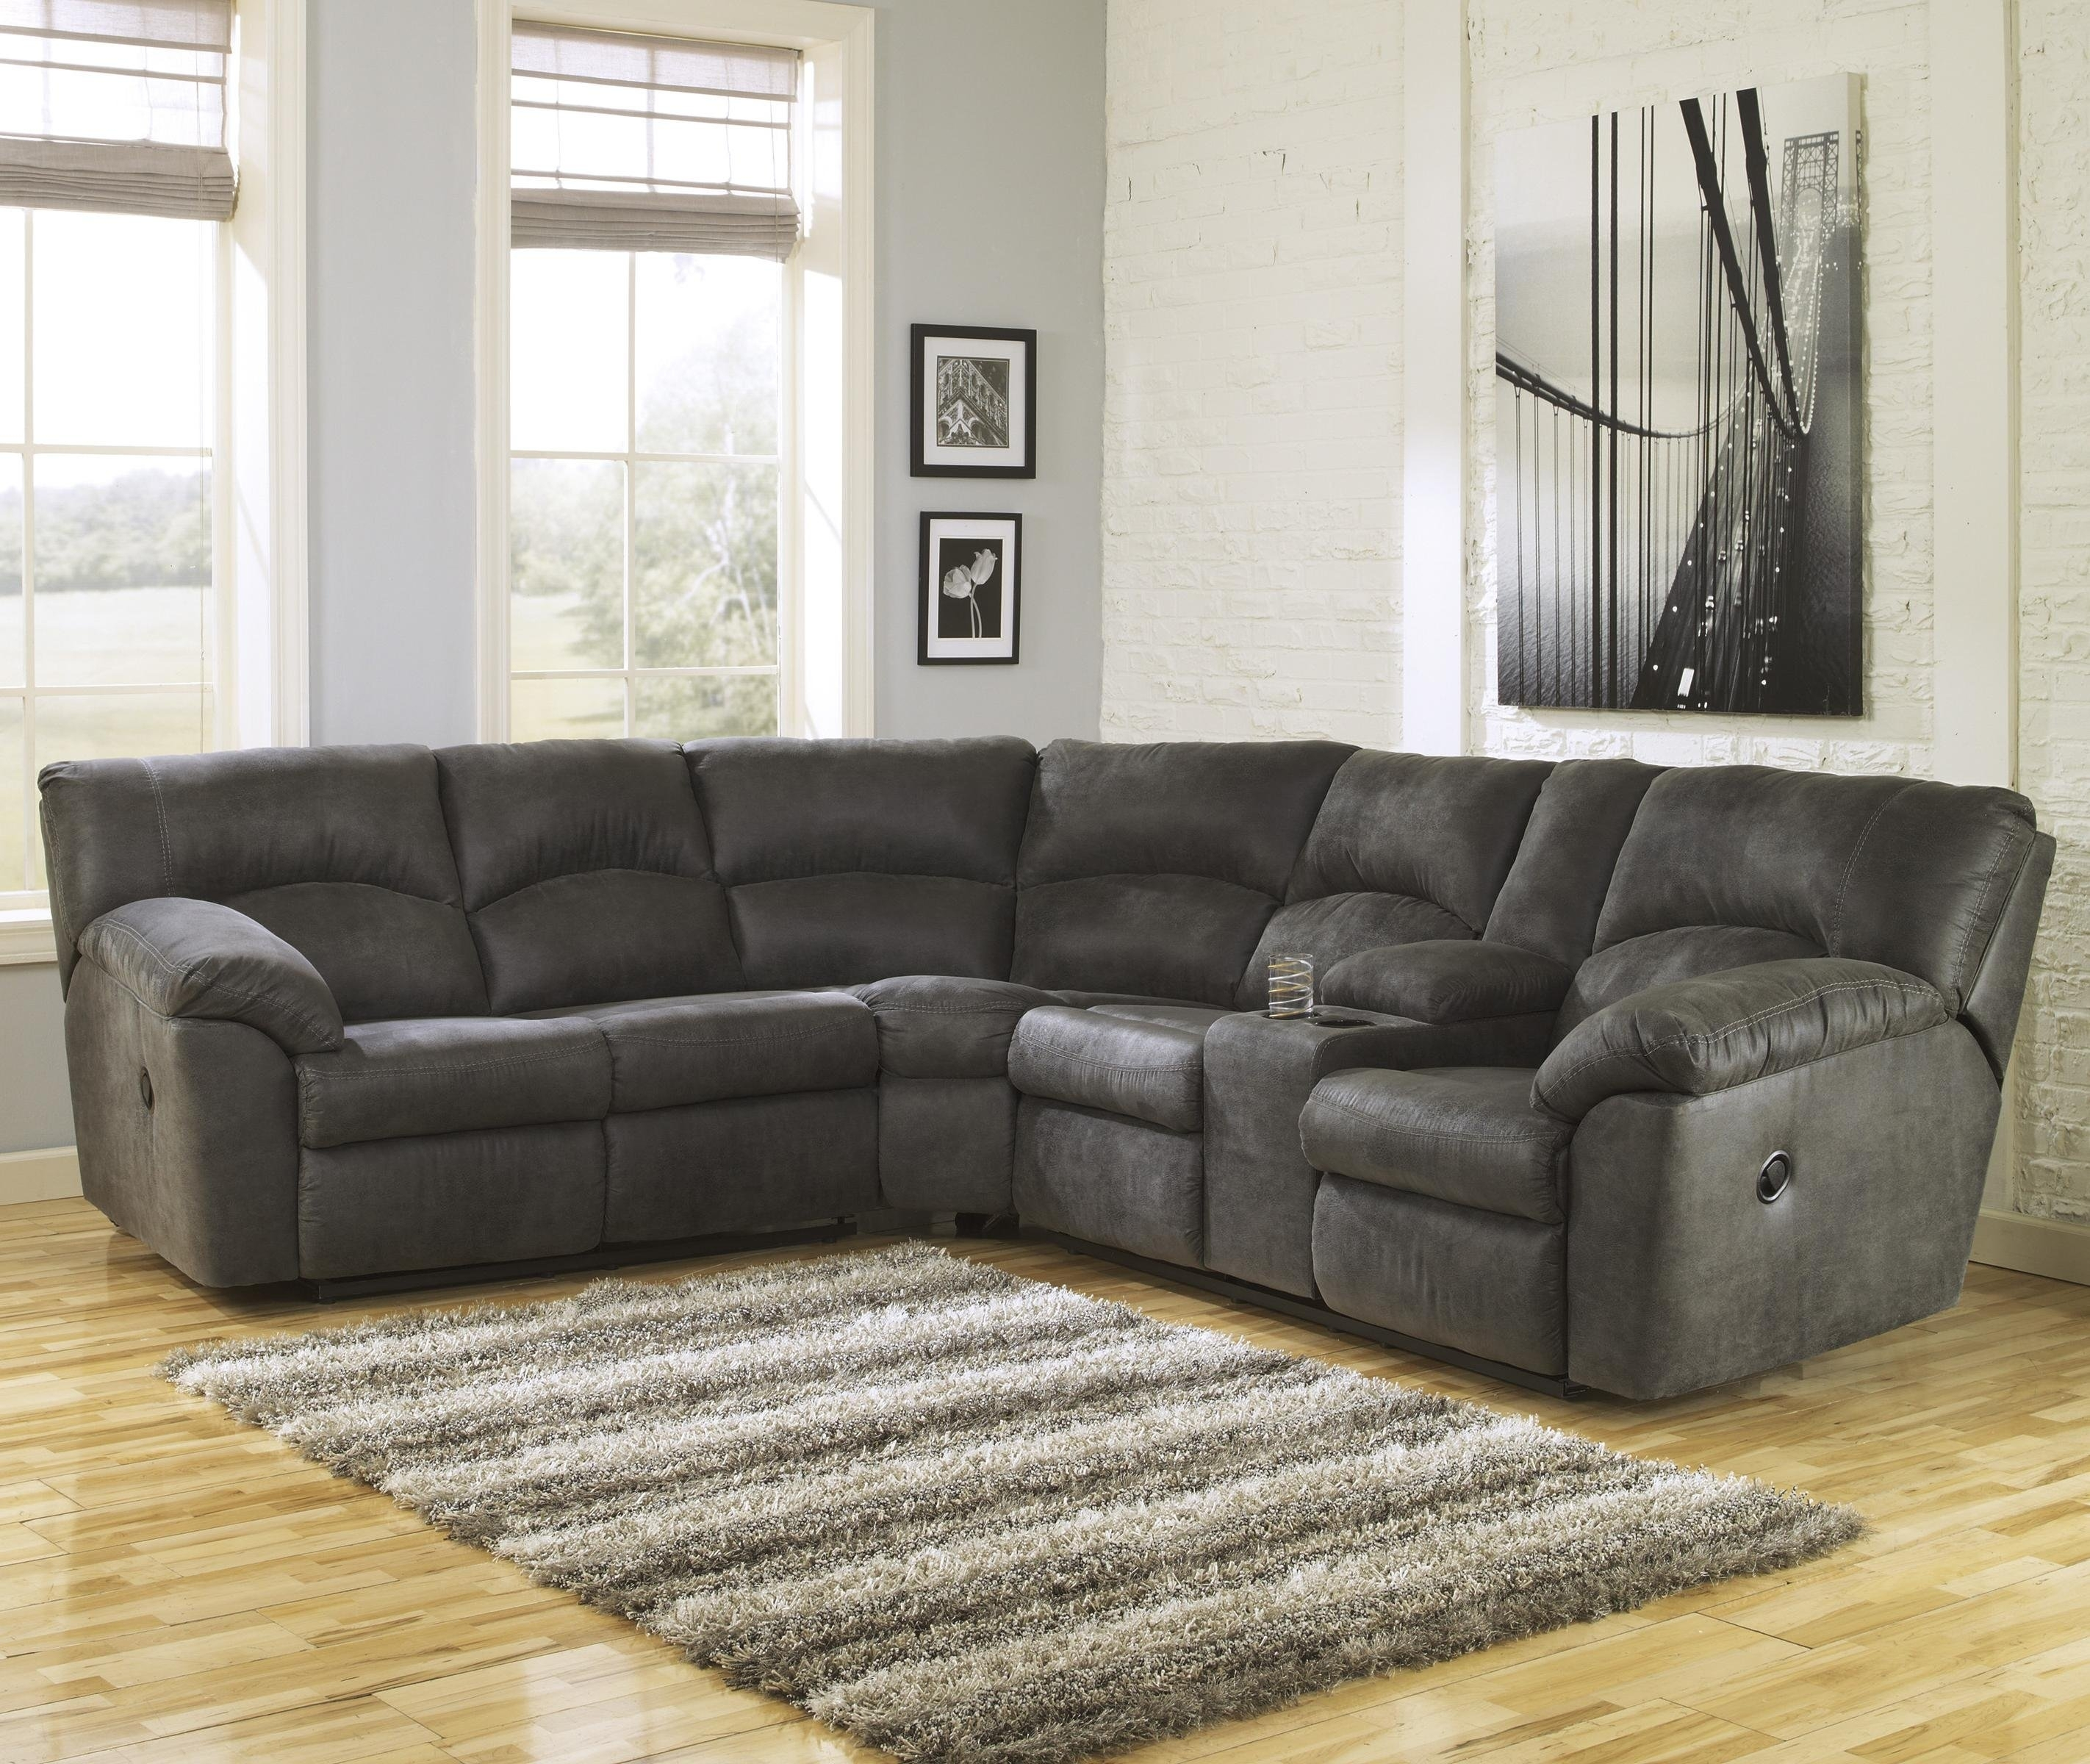 Simple 25 2 Piece Sectionals With Chaise Awesome | Russiandesignshow With Regard To Aquarius Light Grey 2 Piece Sectionals With Laf Chaise (View 11 of 25)